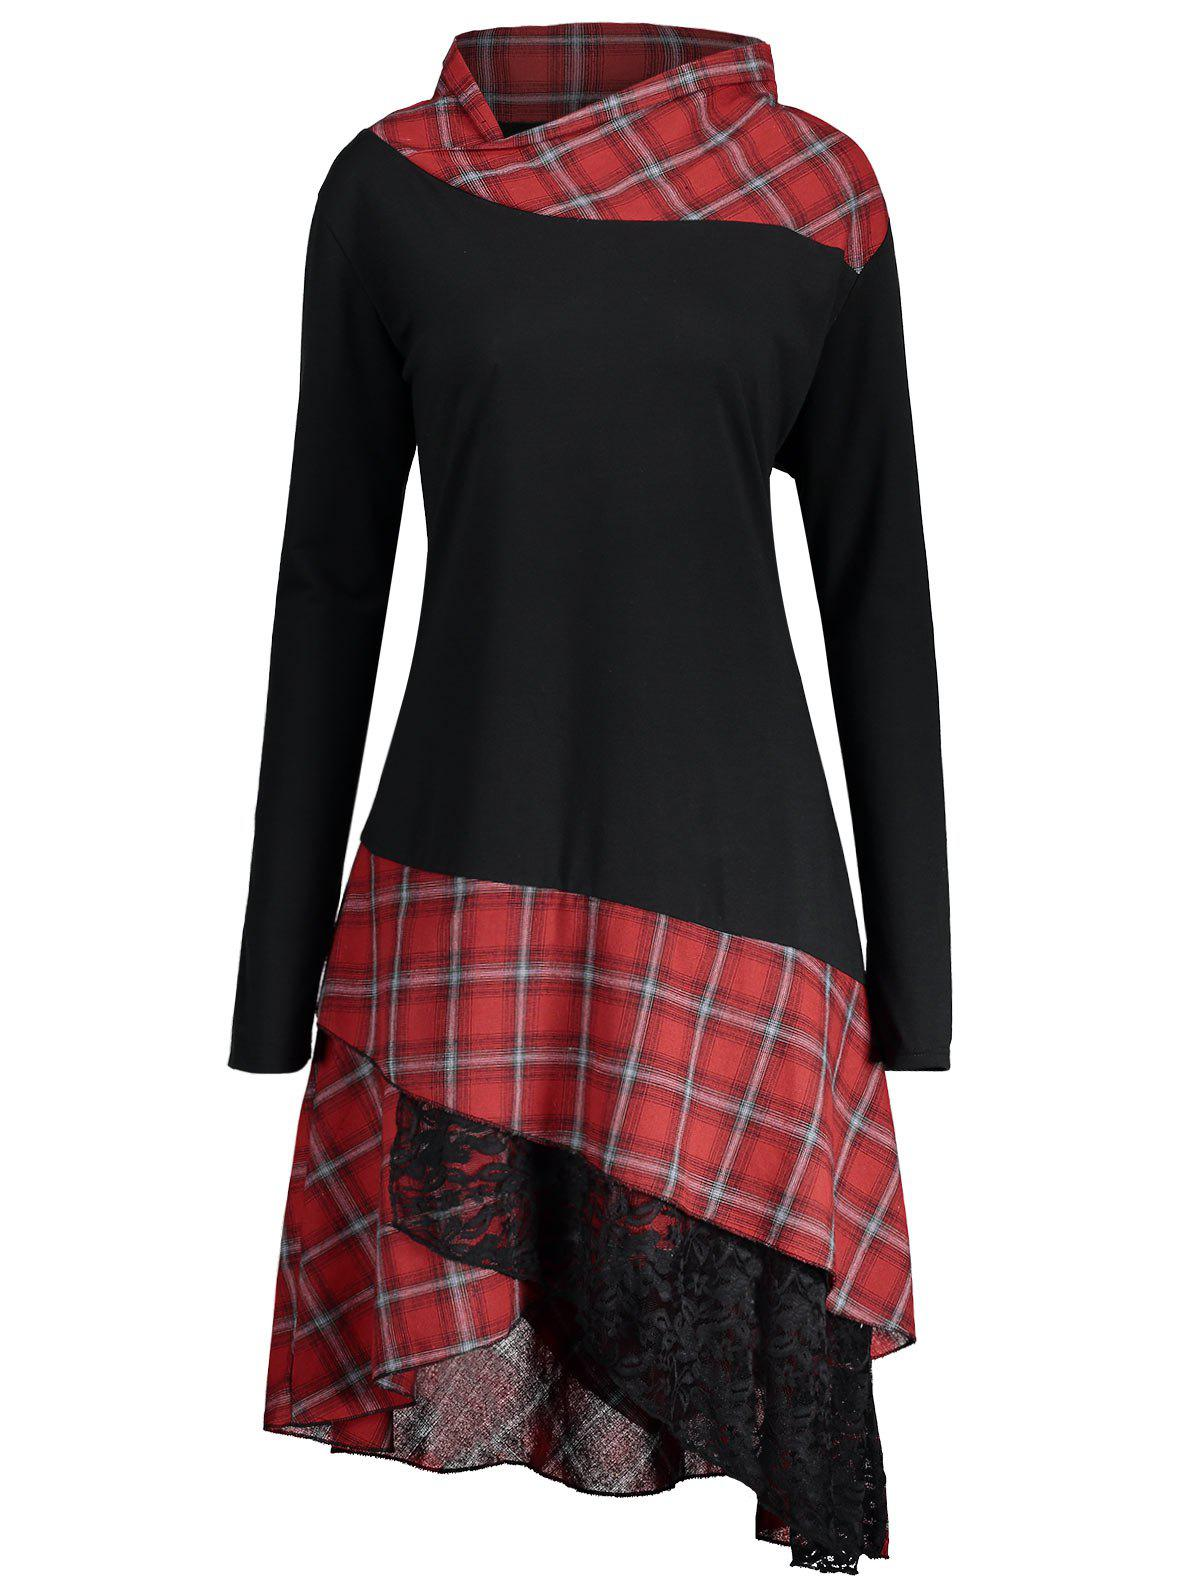 Lace Plaid Panel Plus Size Long Top - BLACK/RED 5XL